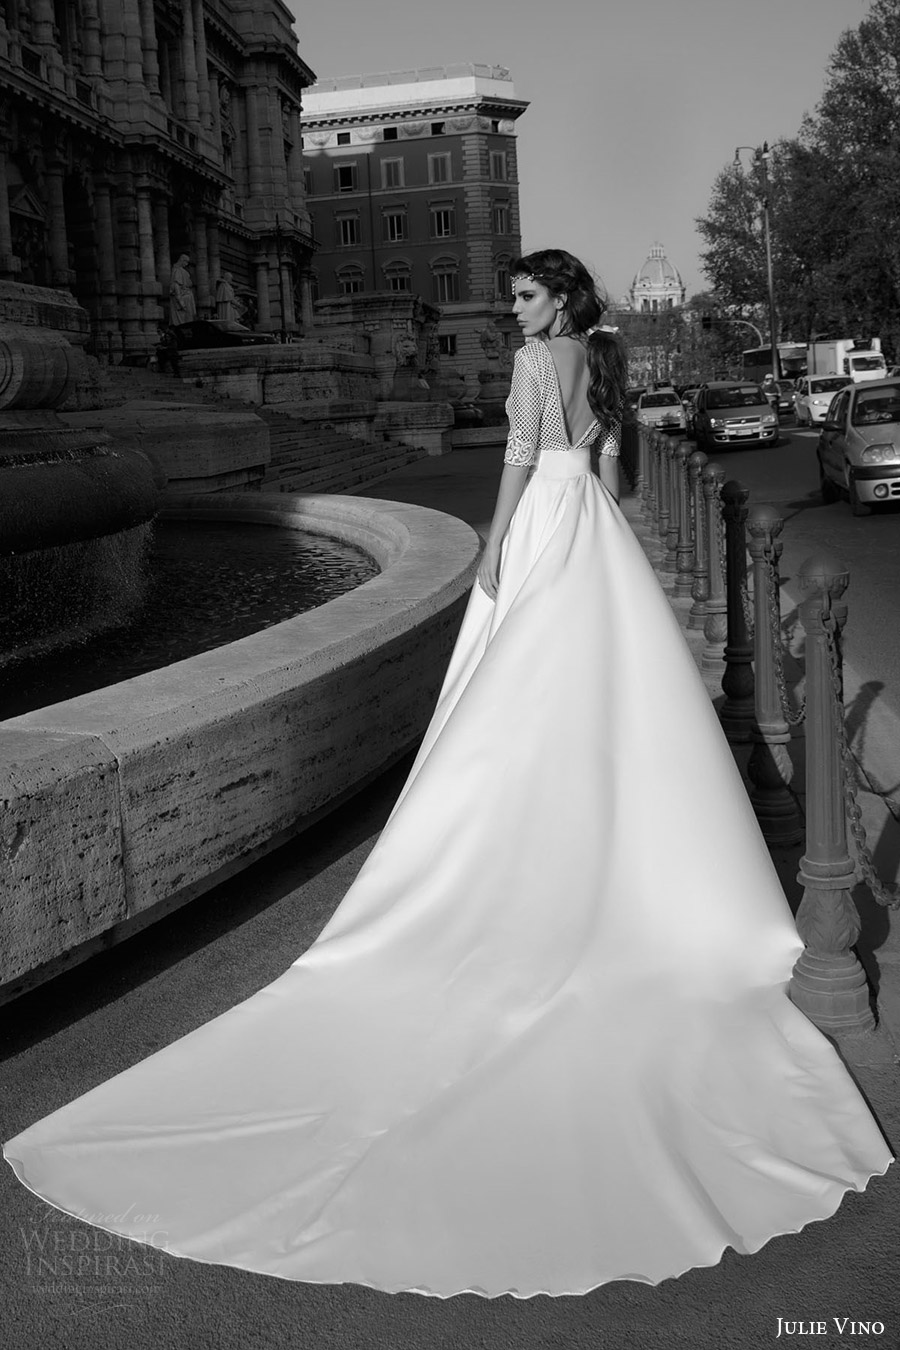 julie vino bridal spring 2017 half sleeves jewel neck sheath wedding dress (prisilla) bv elegant aline overskirt